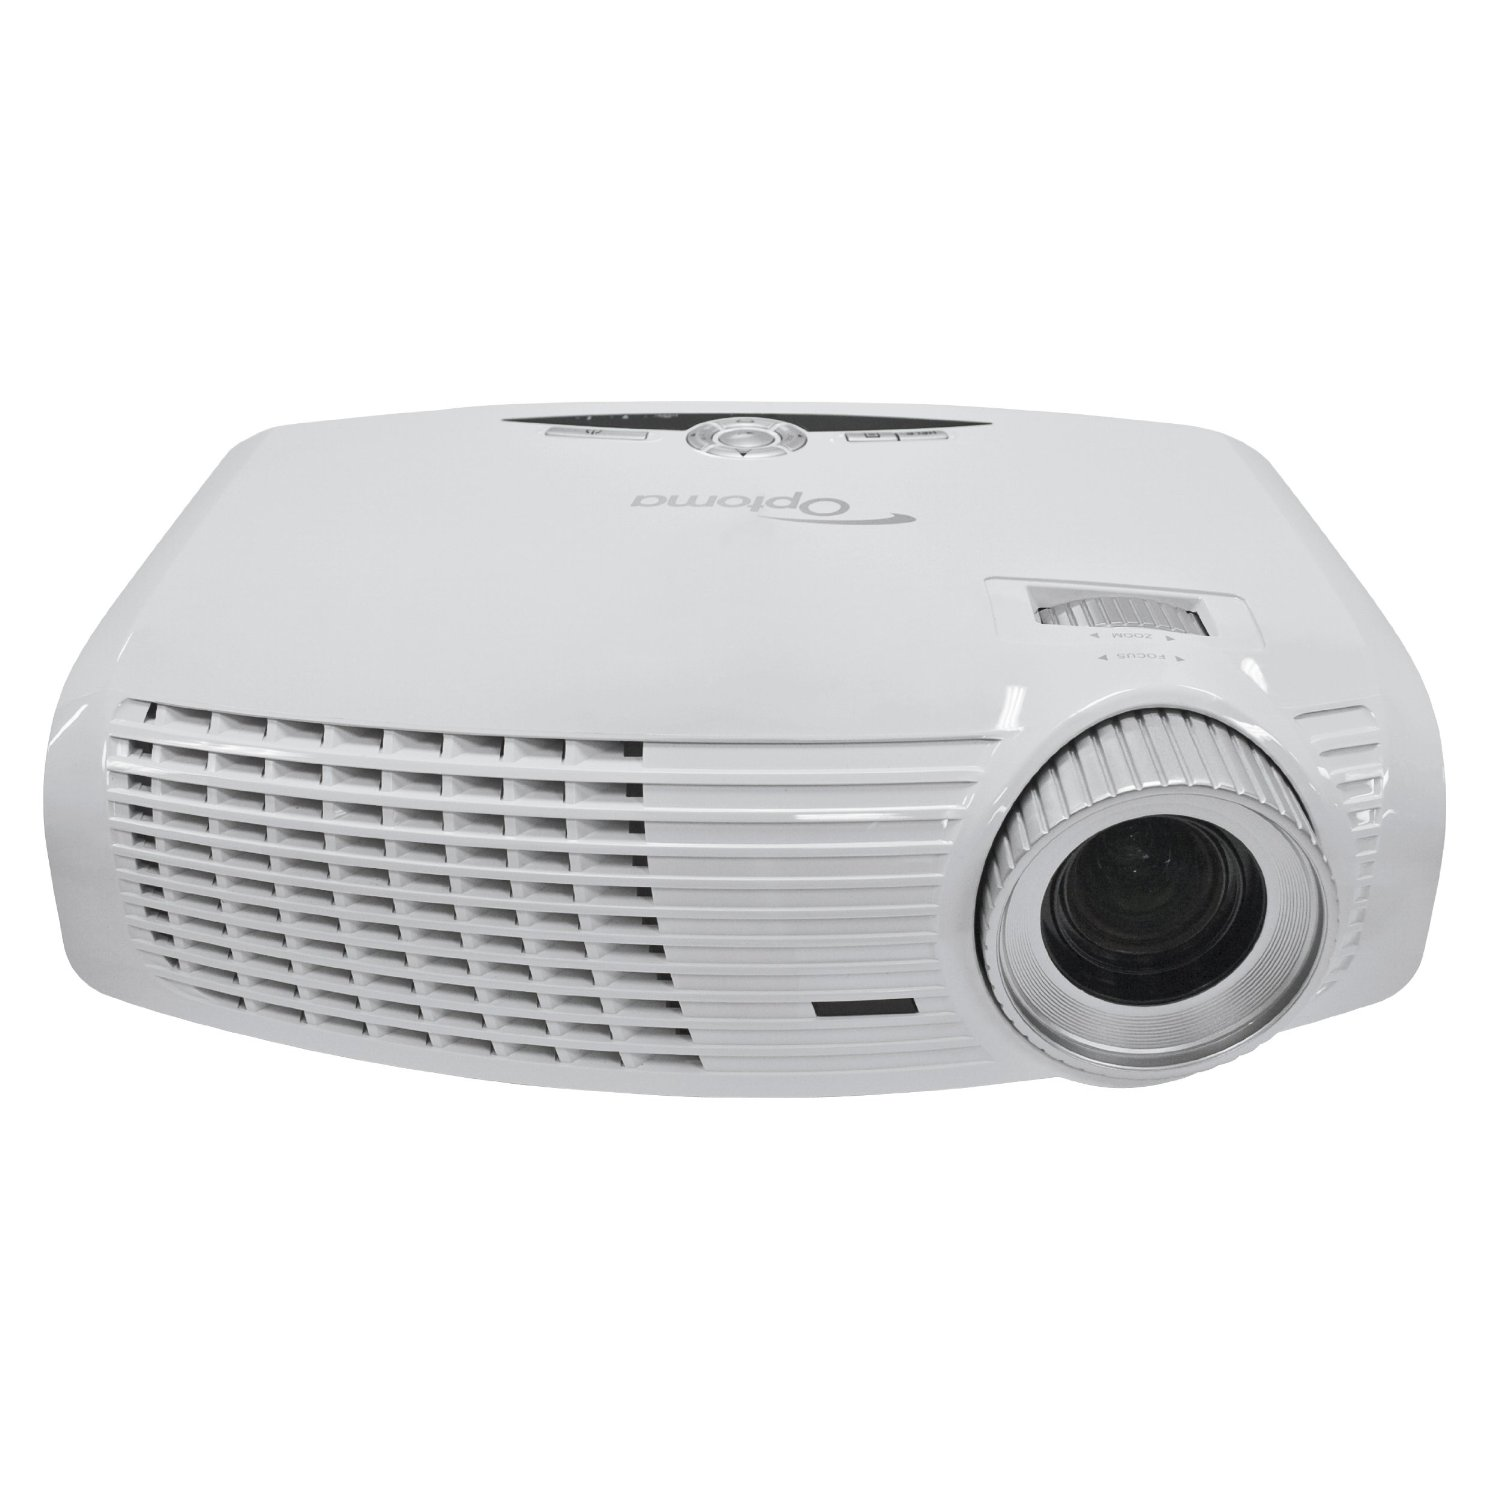 Mini wall best hd projector 1080p reviews optoma hd20 for Best small hd projector